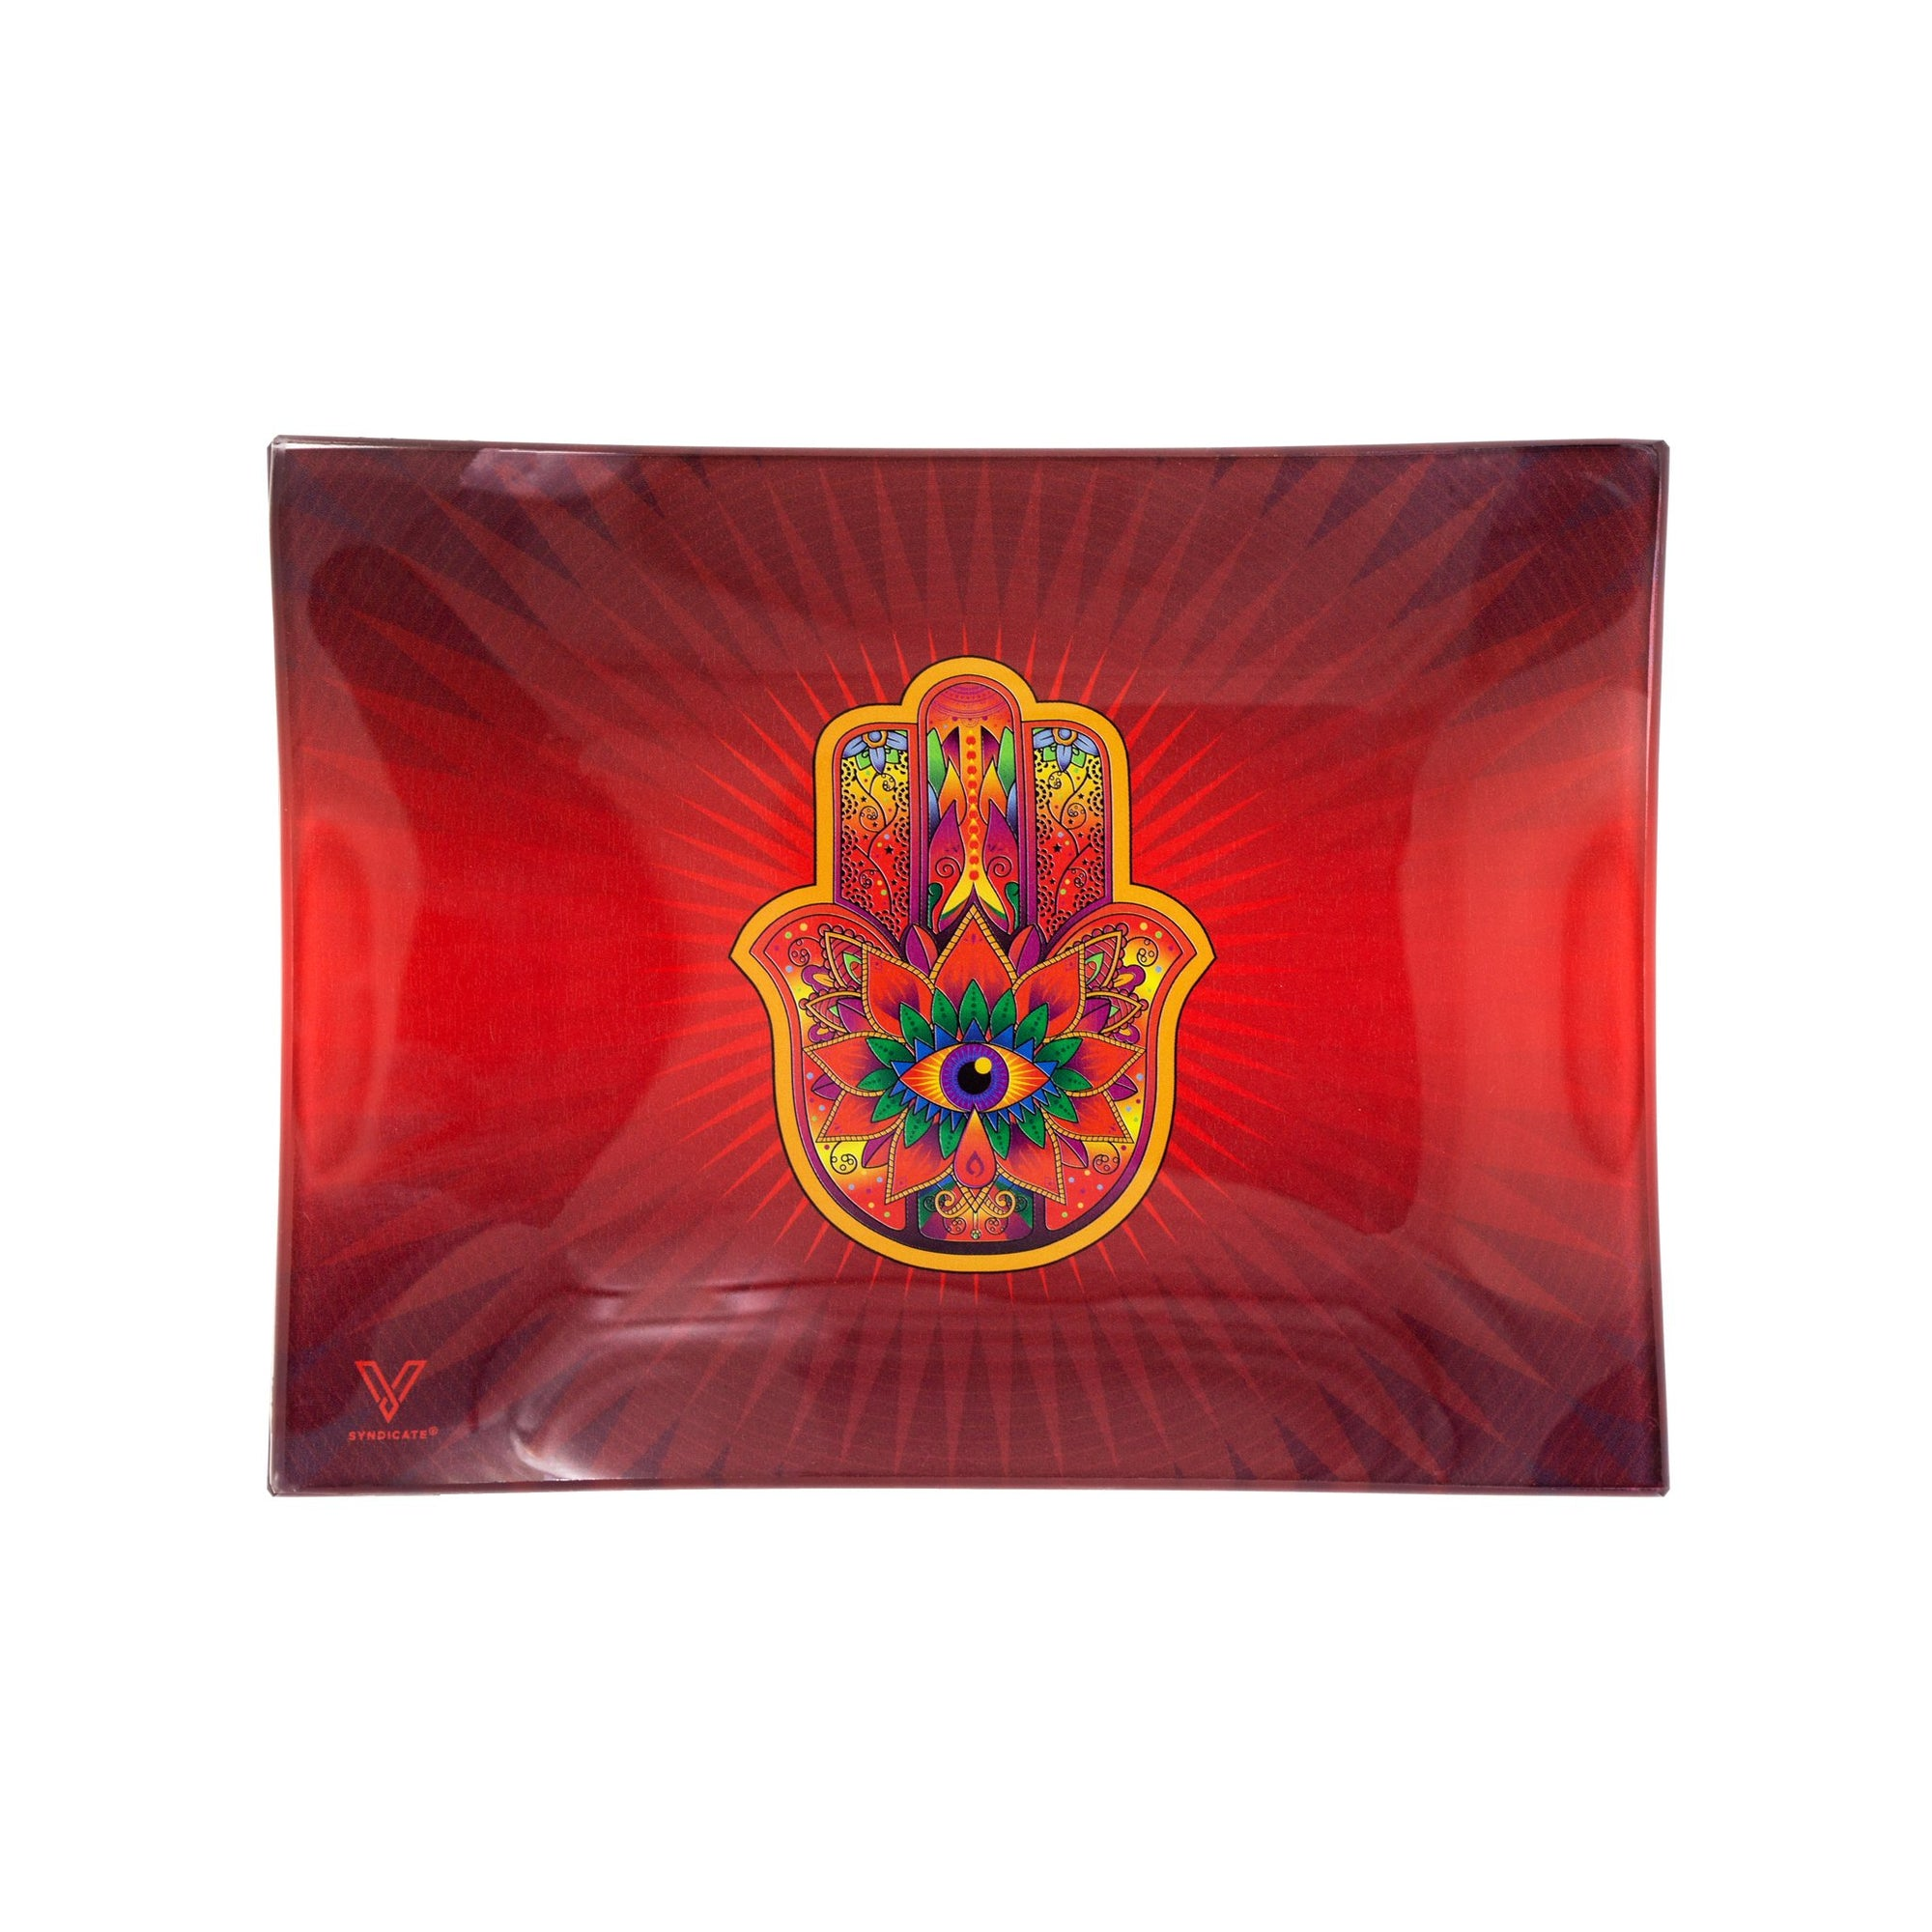 V Syndicate Red Hamsa Glass Rolling Tray - 6.5in